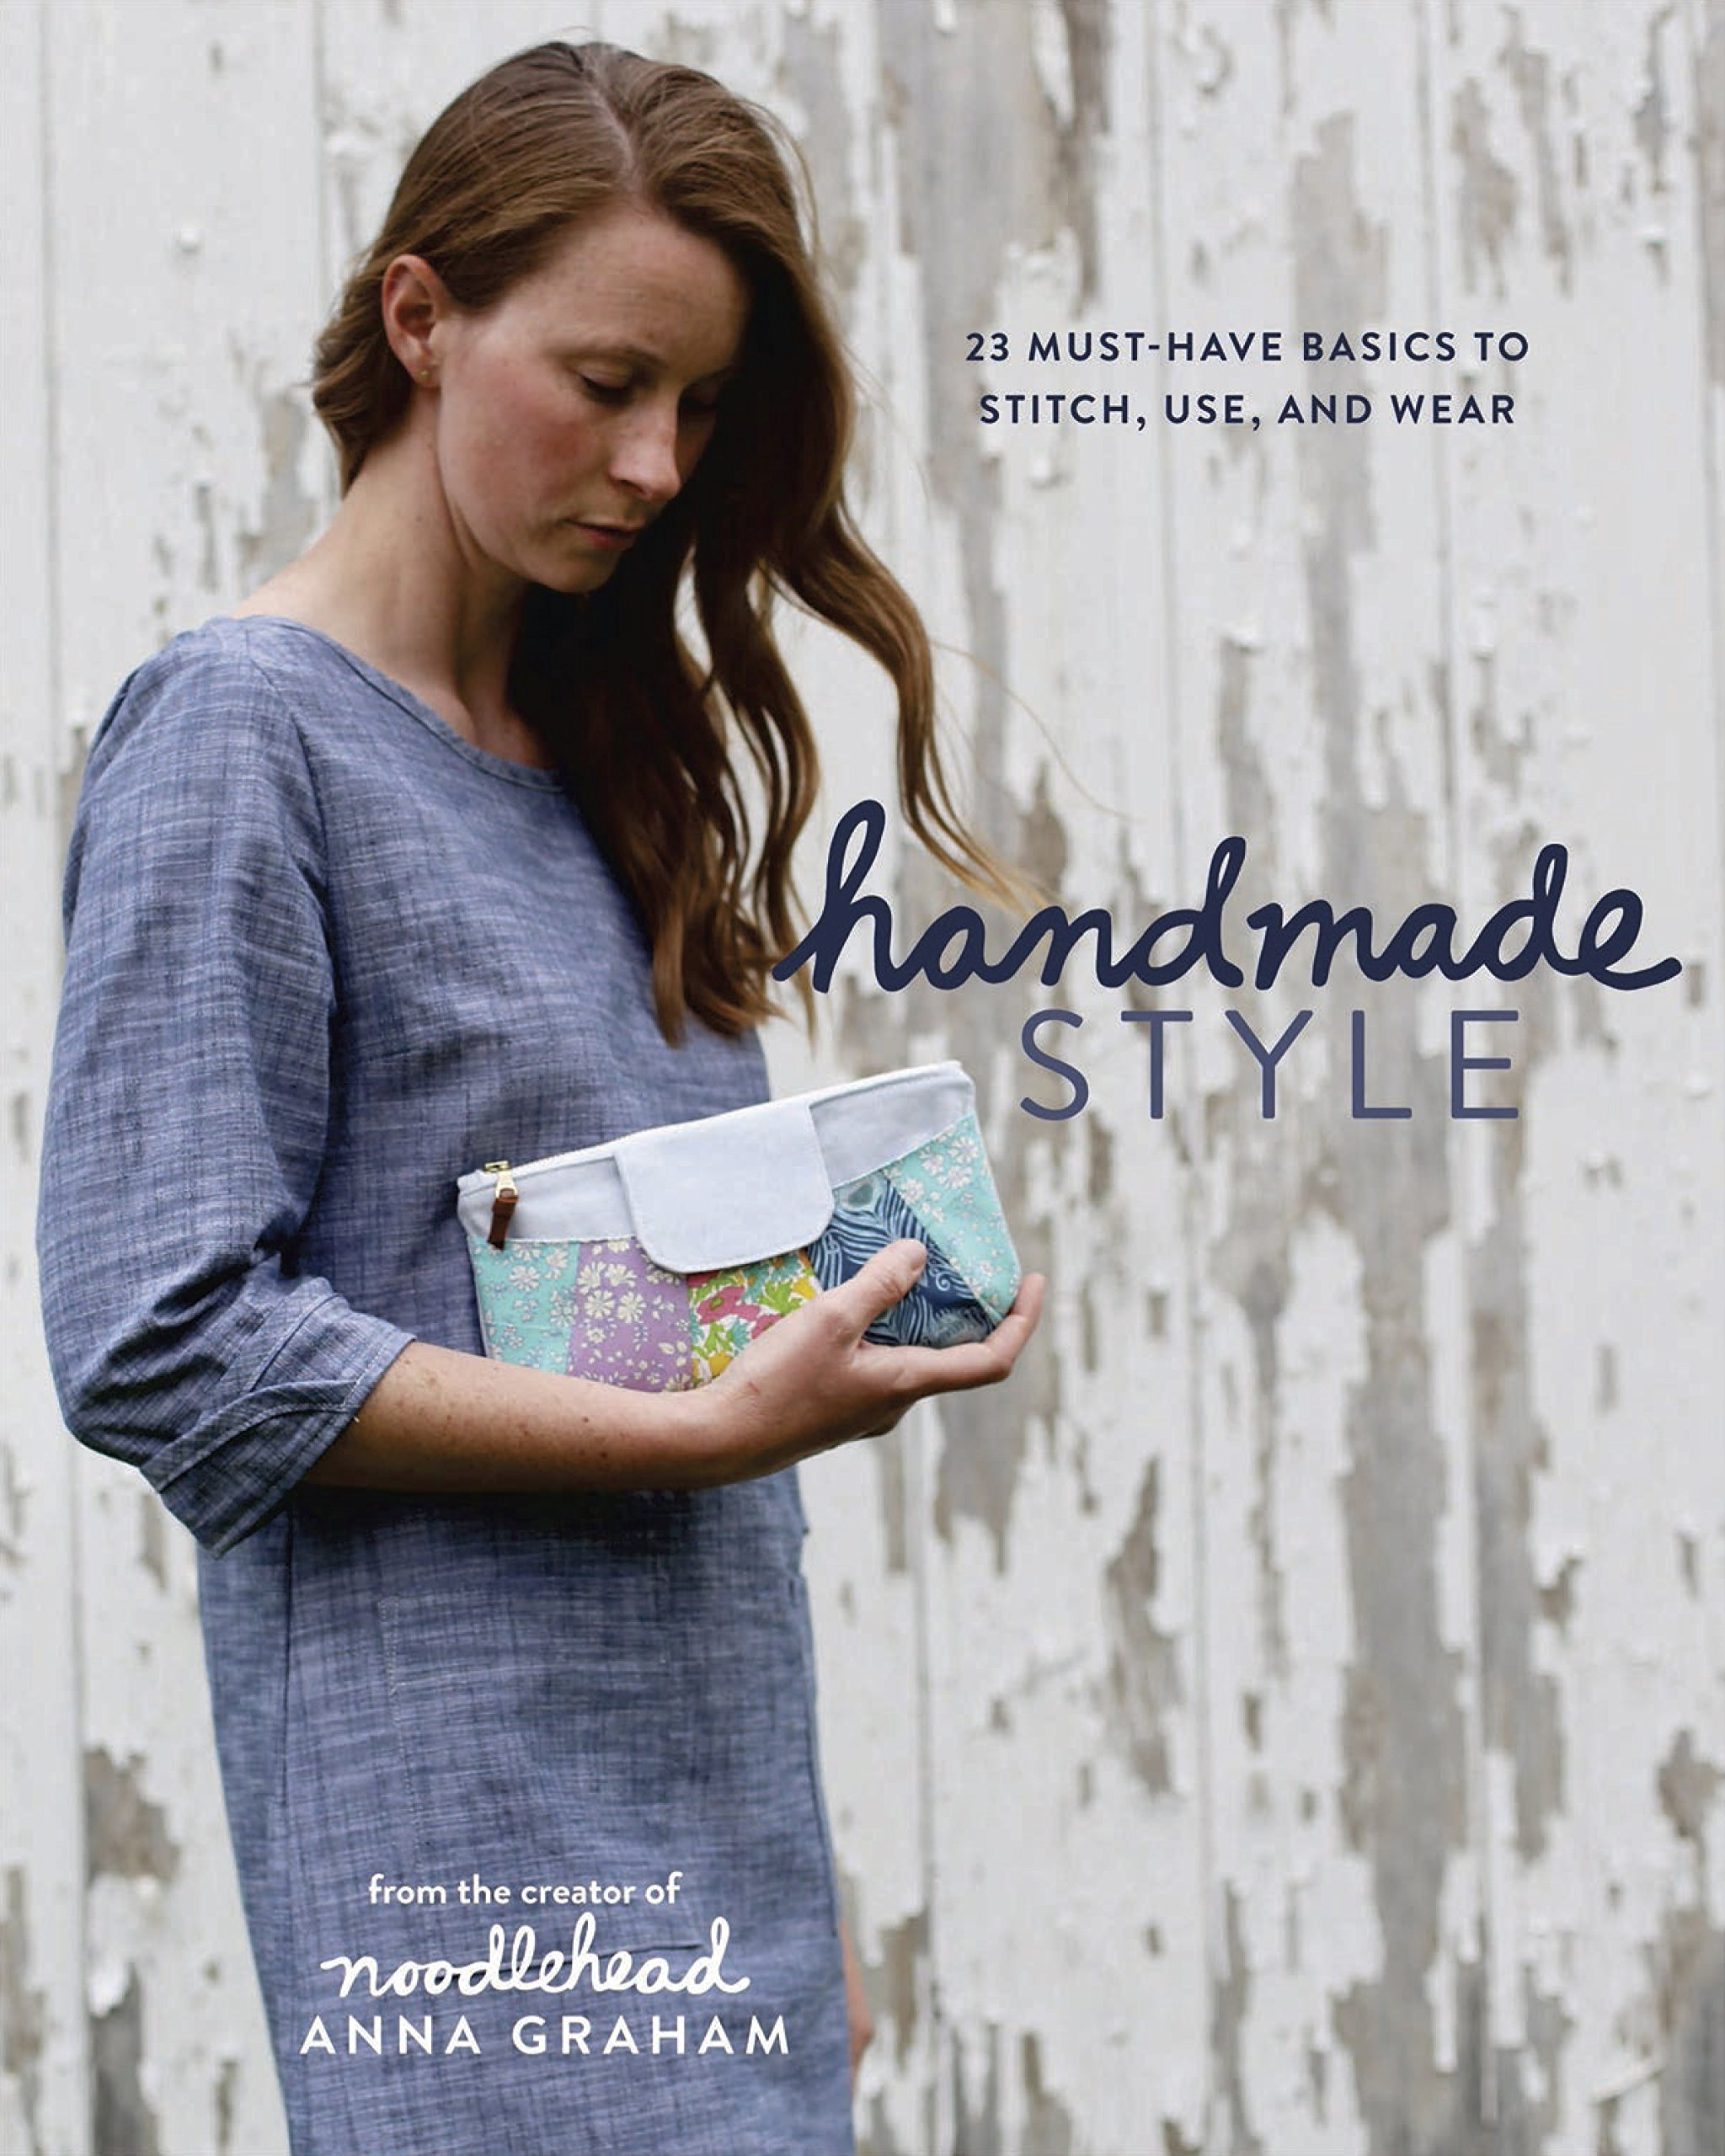 Handmade Style: 23 Must-Have Basics to Stitch, Use, and Wear PDF